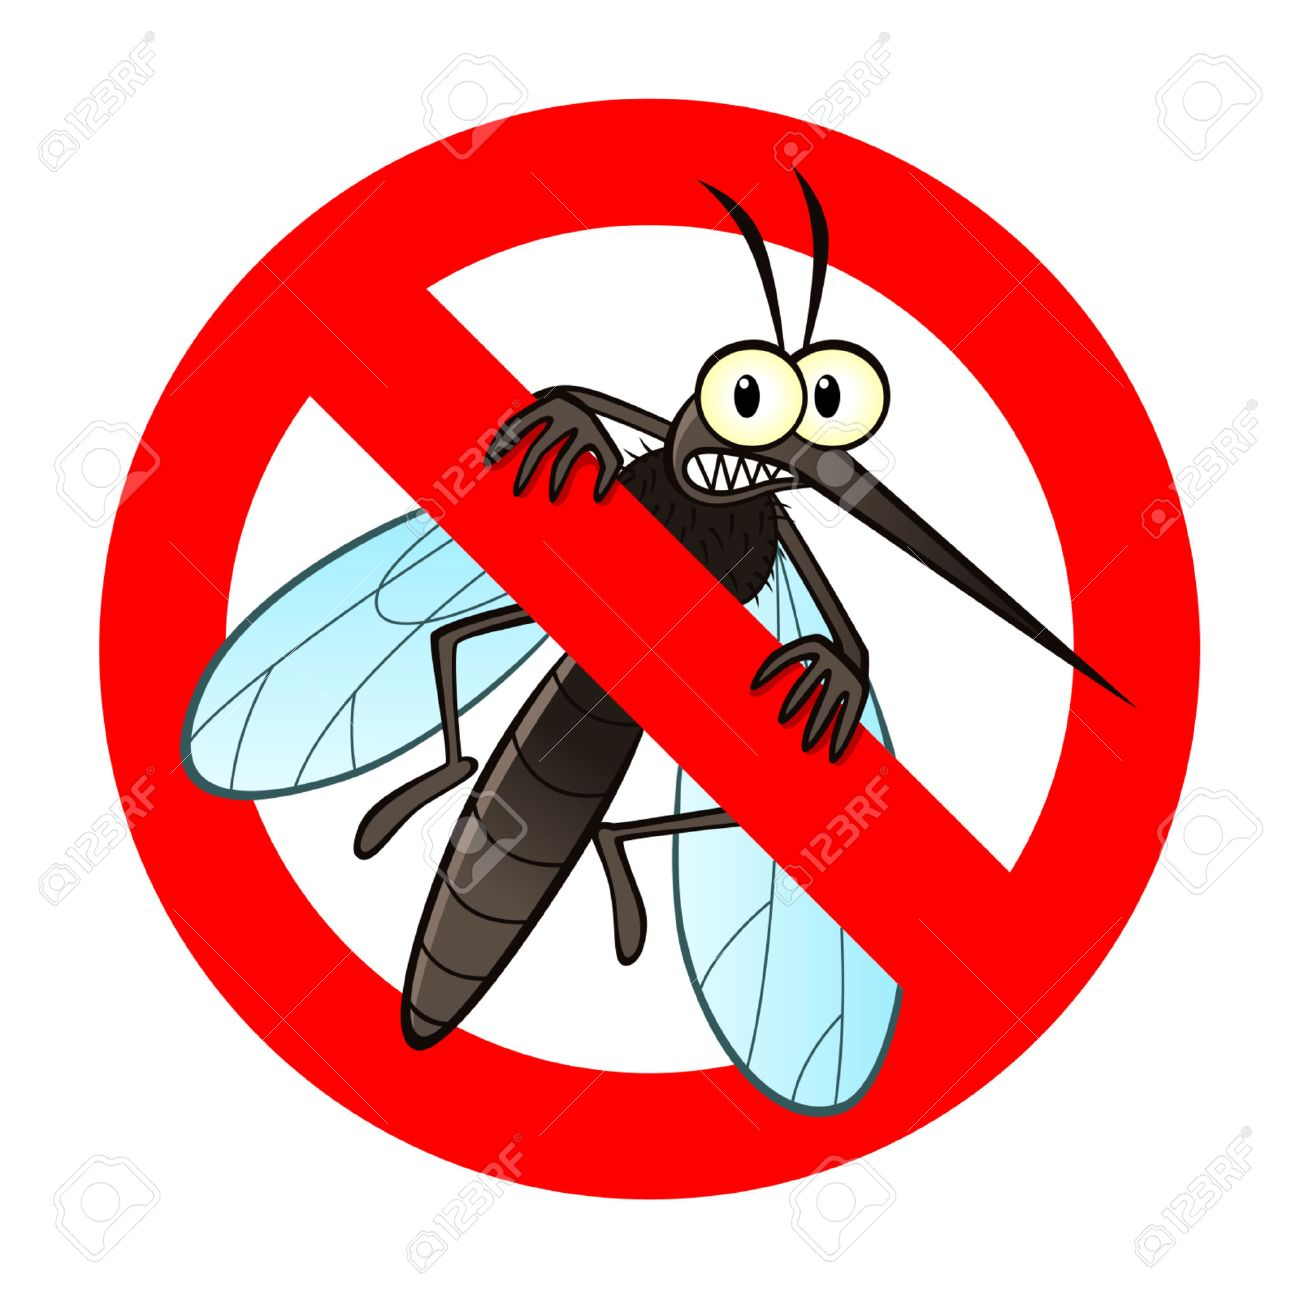 http://previews.123rf.com/images/refluo/refluo1405/refluo140500001/28054735-Anti-mosquito-sign-with-a-funny-cartoon-mosquito--Stock-Vector-control.jpg